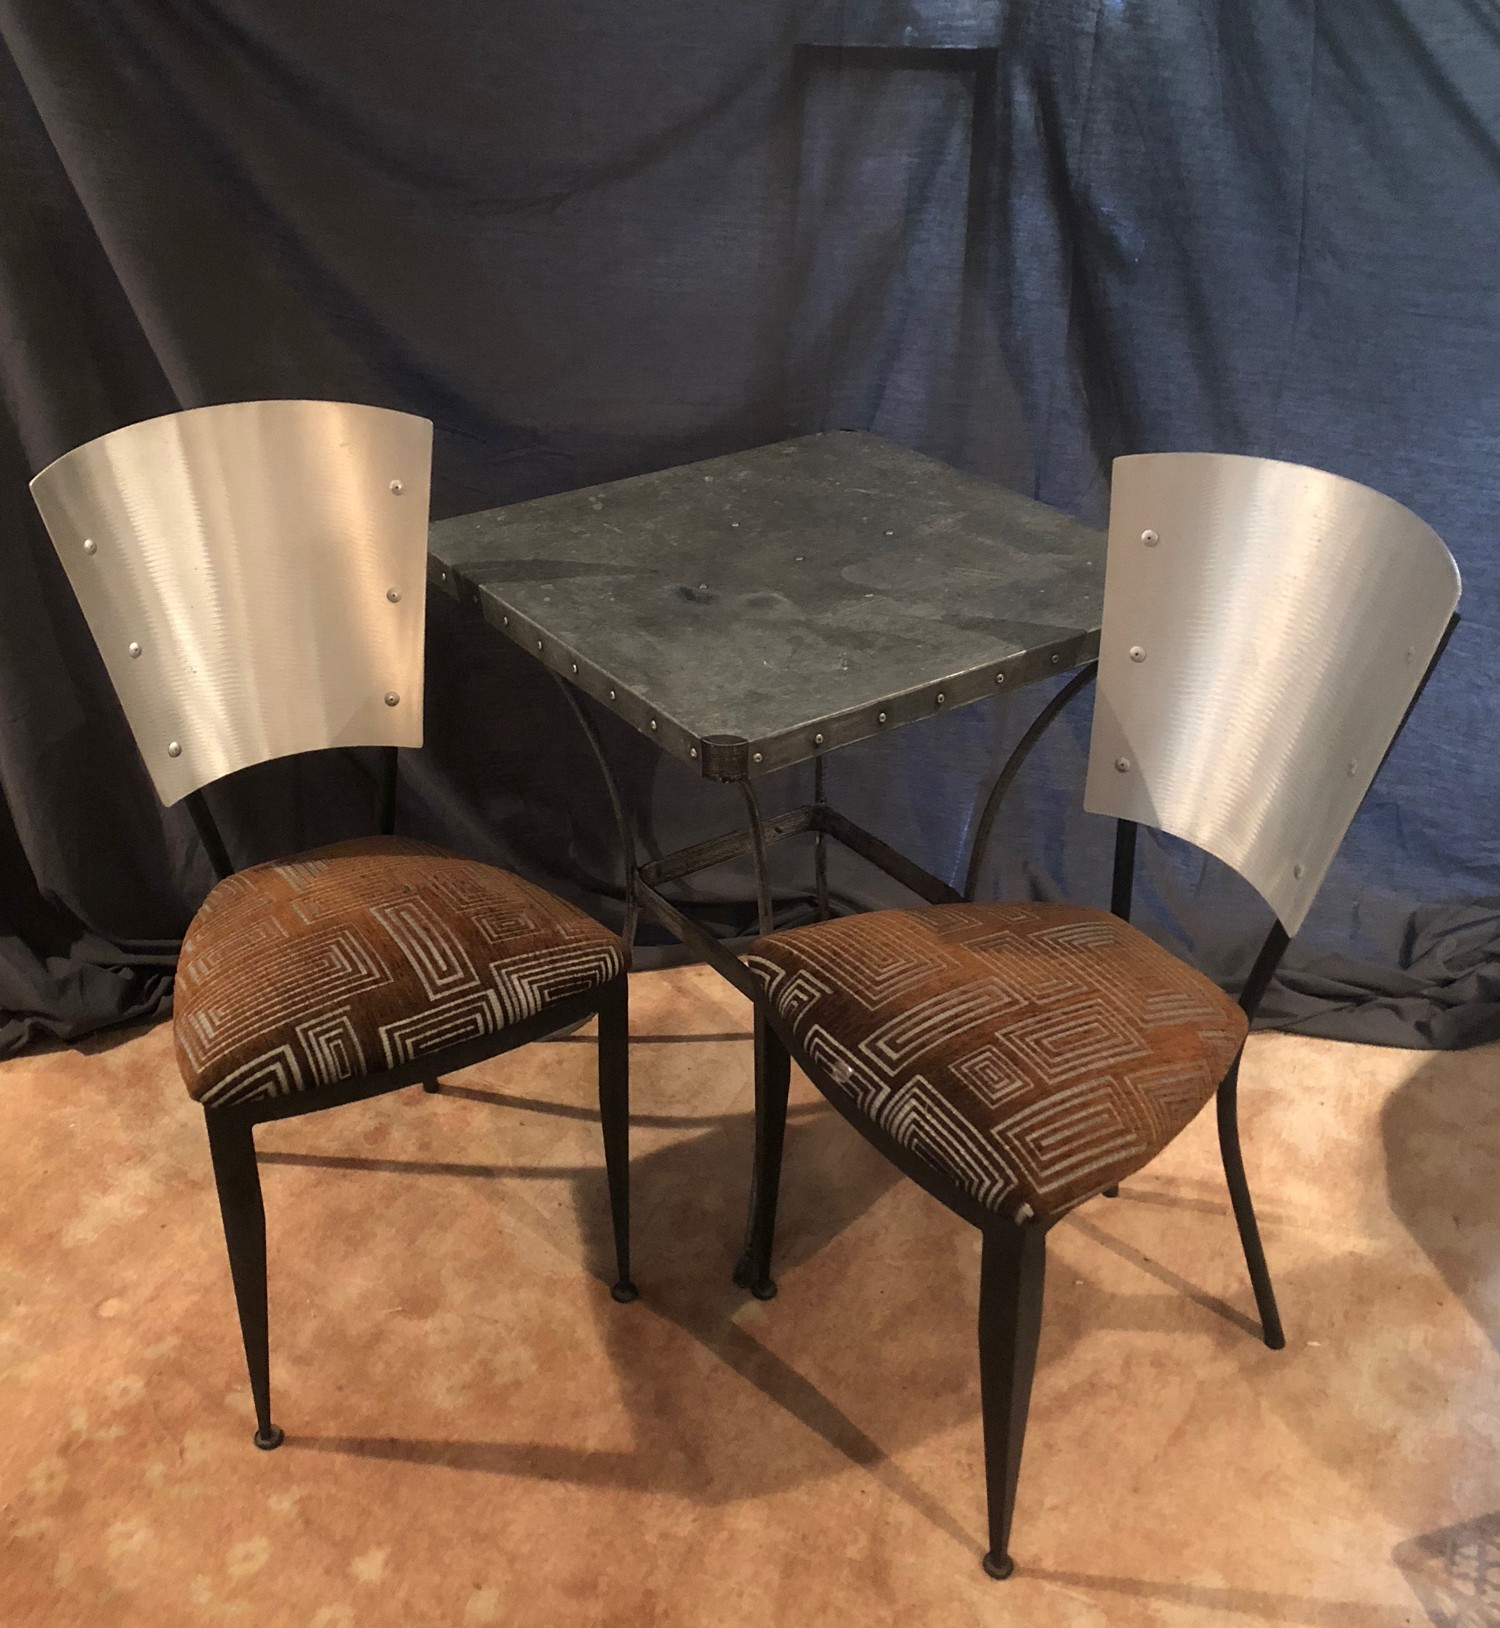 Modern upholstered Metal Bistro Chairs w/Metal Table